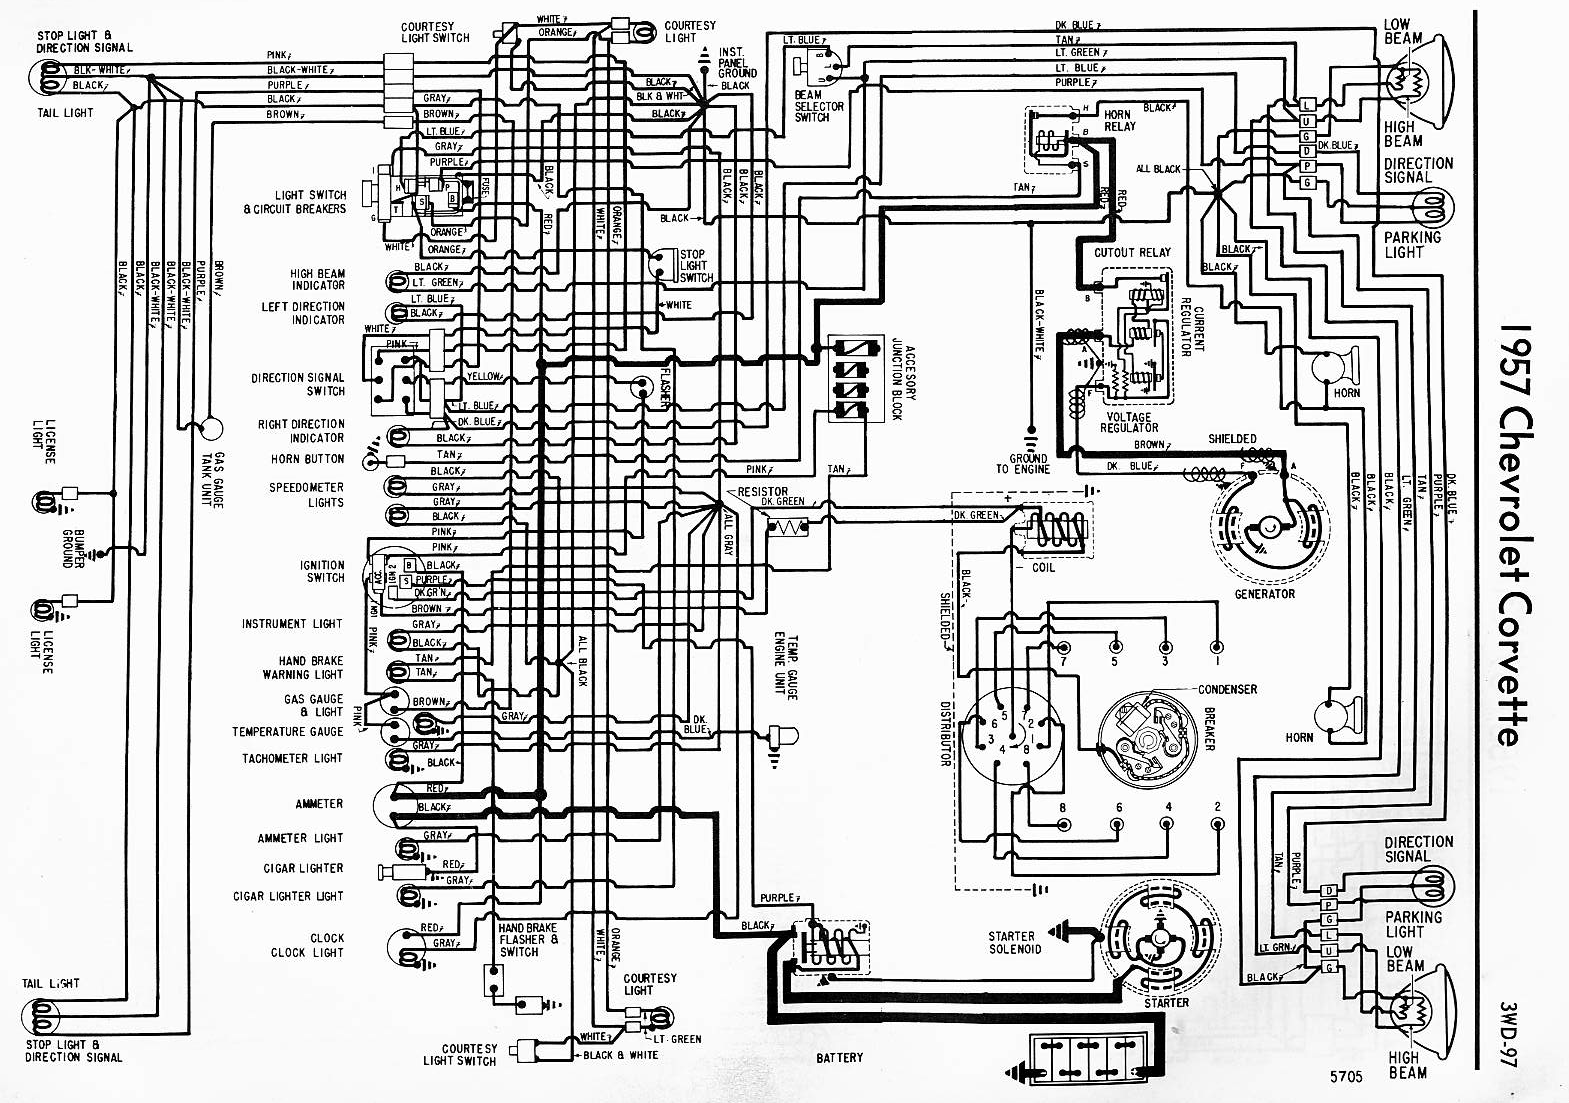 1957 corvette wiring diagram willcox corvette, inc Chevy Astro Wiring-Diagram